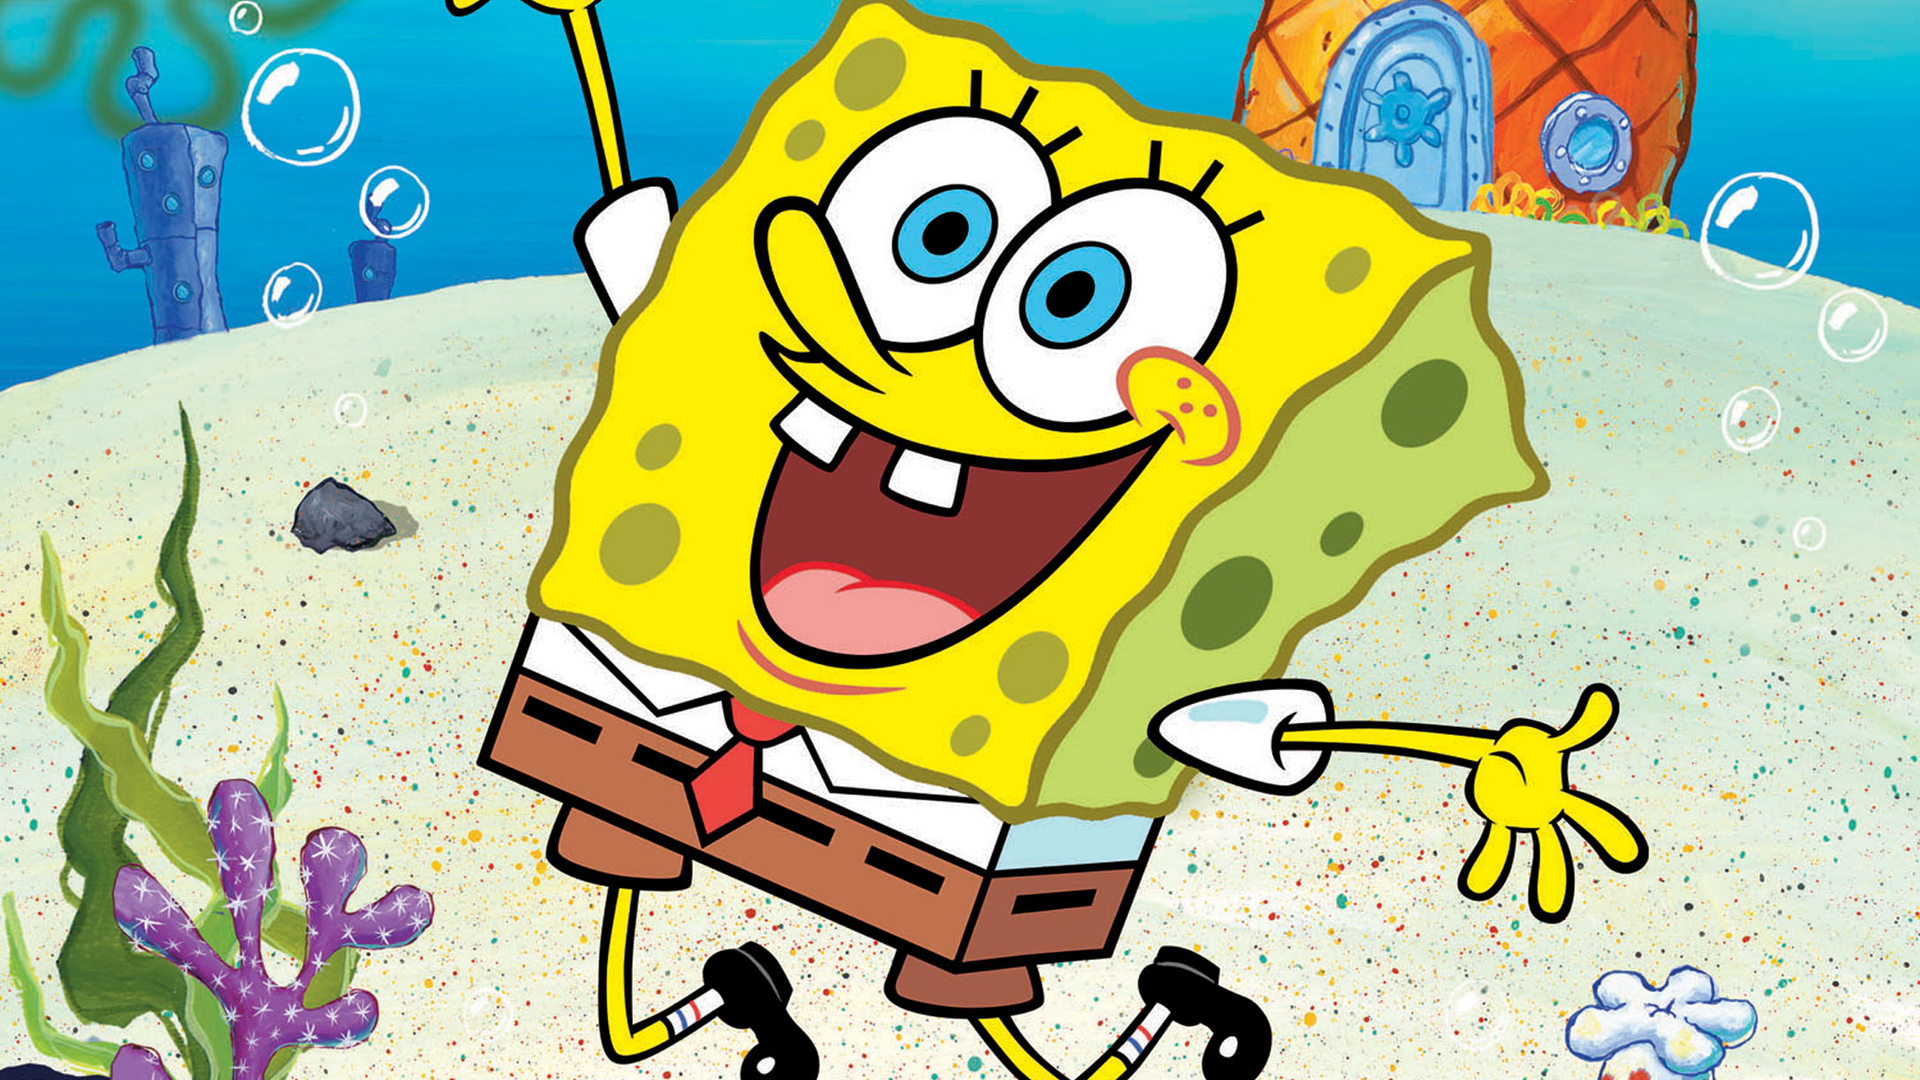 spongebob squarepants hd wallpaper 58842